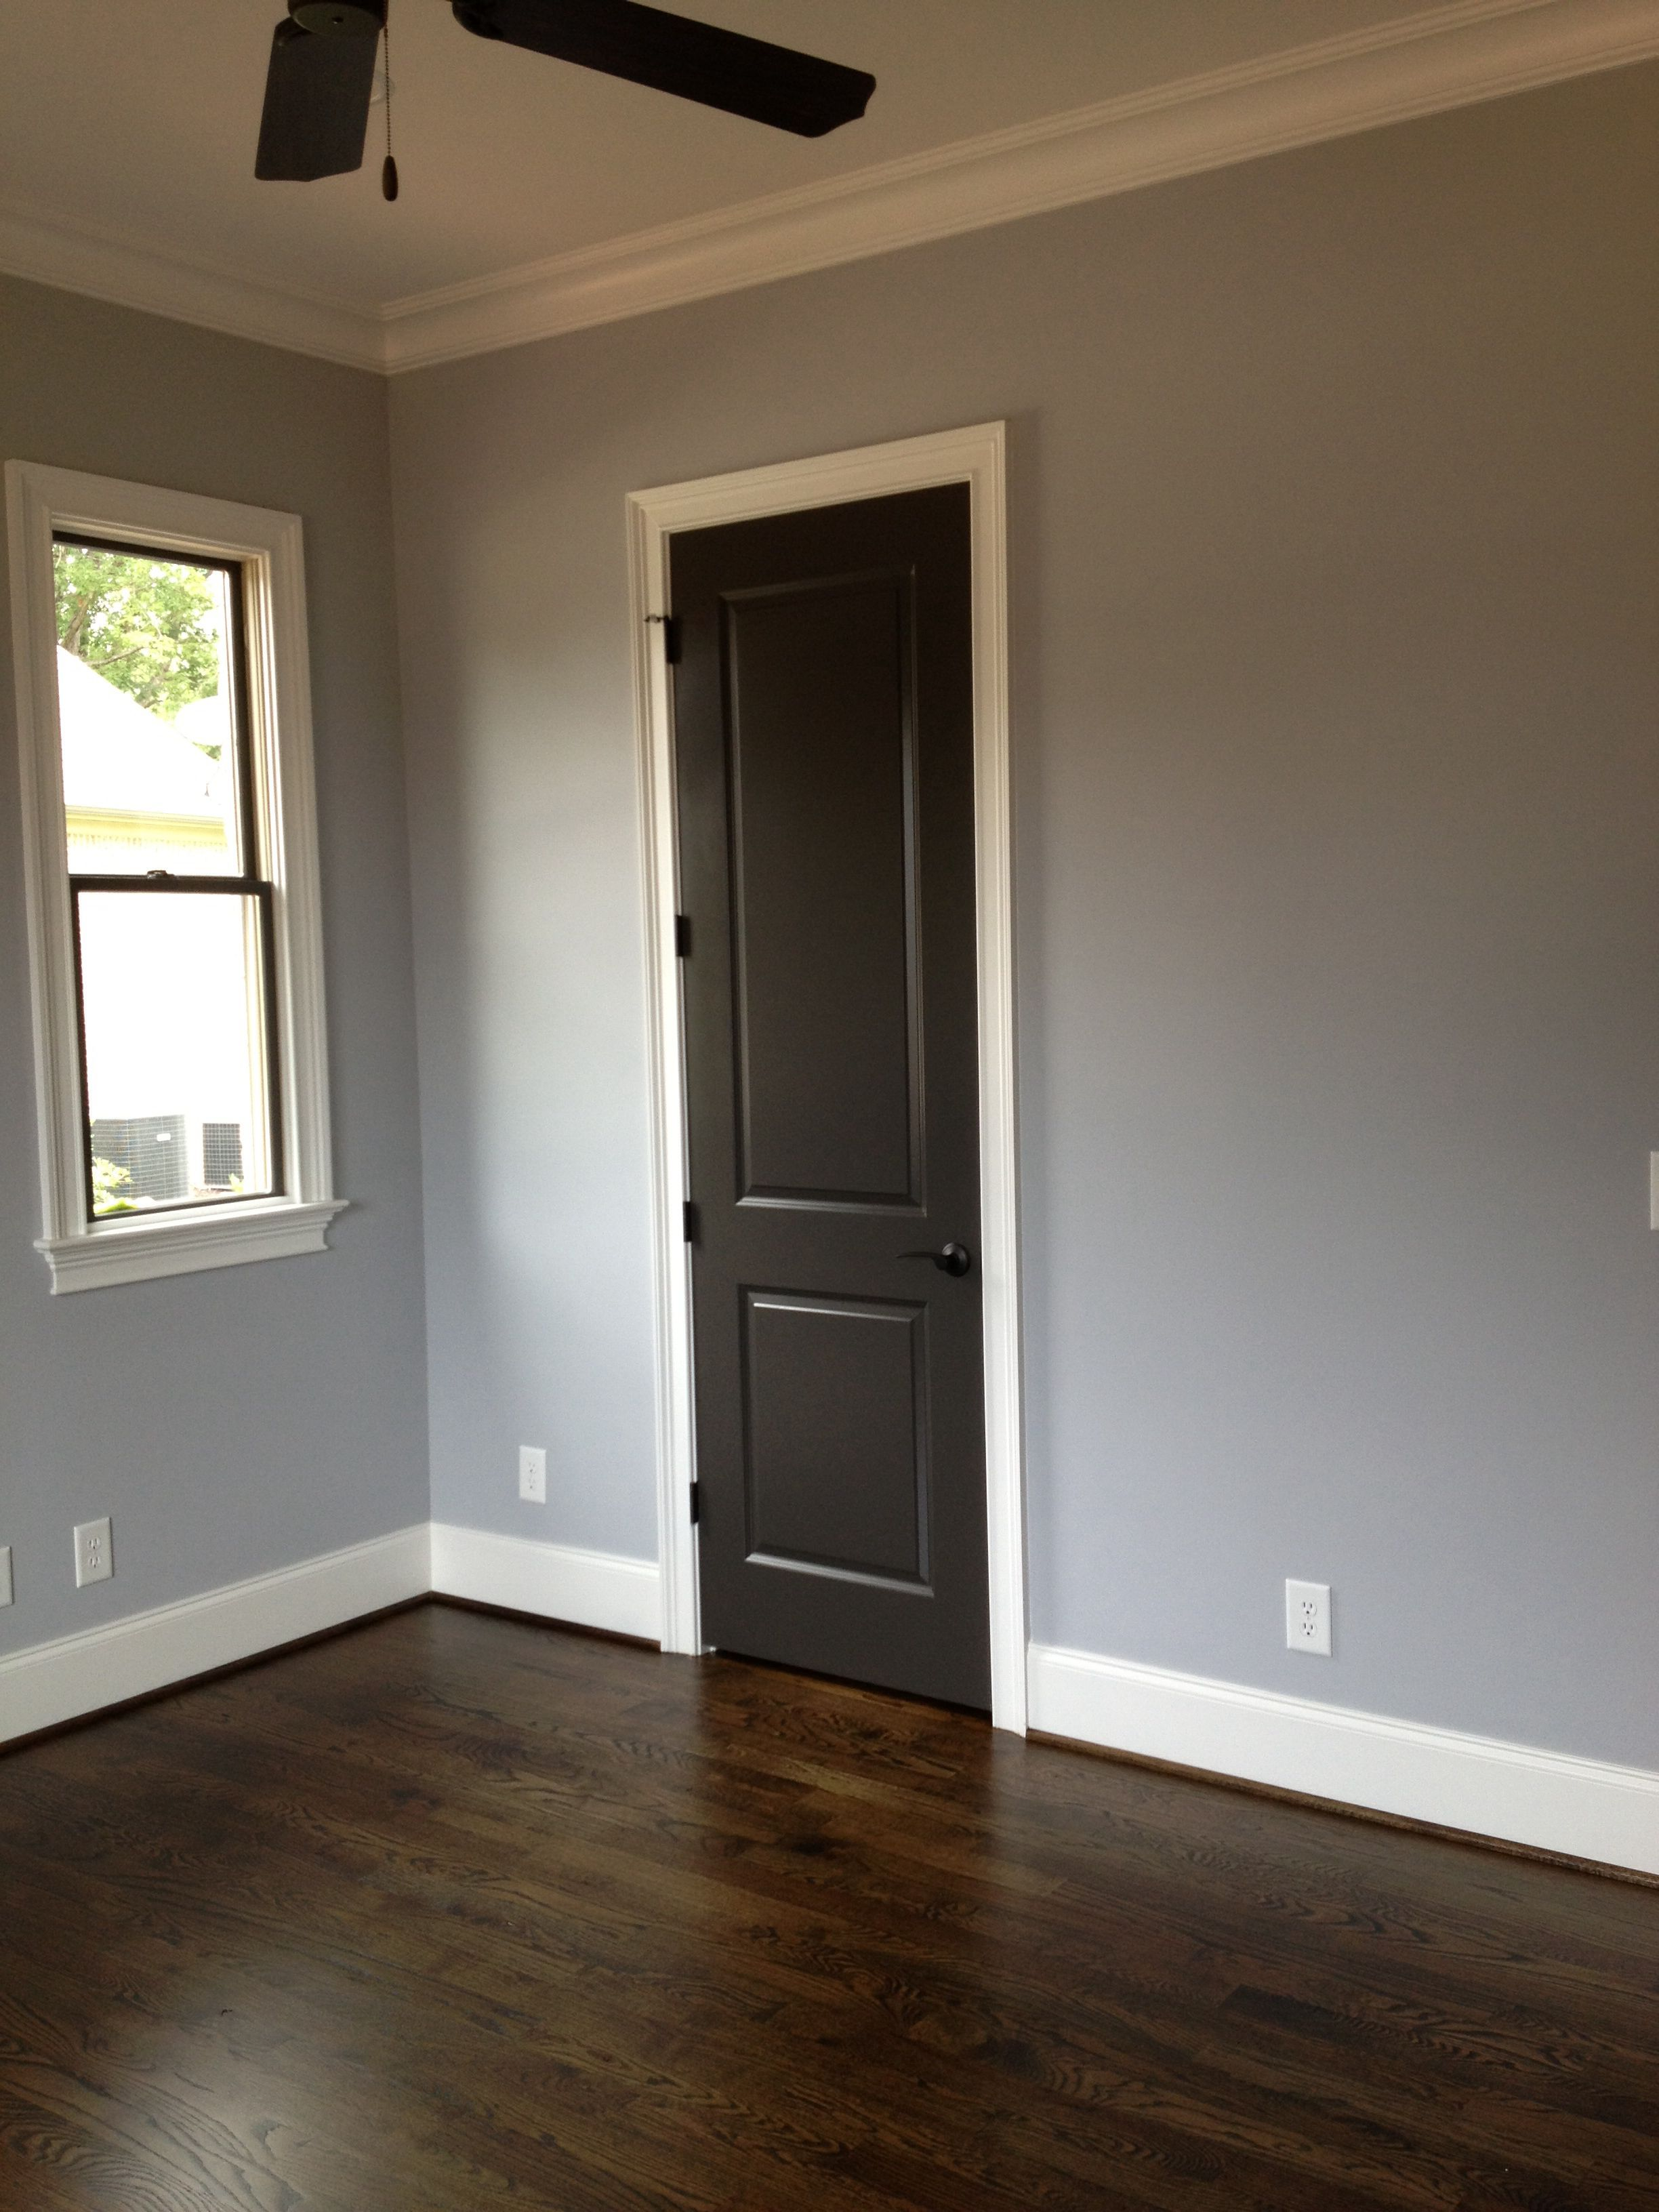 Pin By K Riggs Daniel On Chez Moi Bedroom Paint Colors Sherwin Williams Guest Room Colors Black Interior Doors